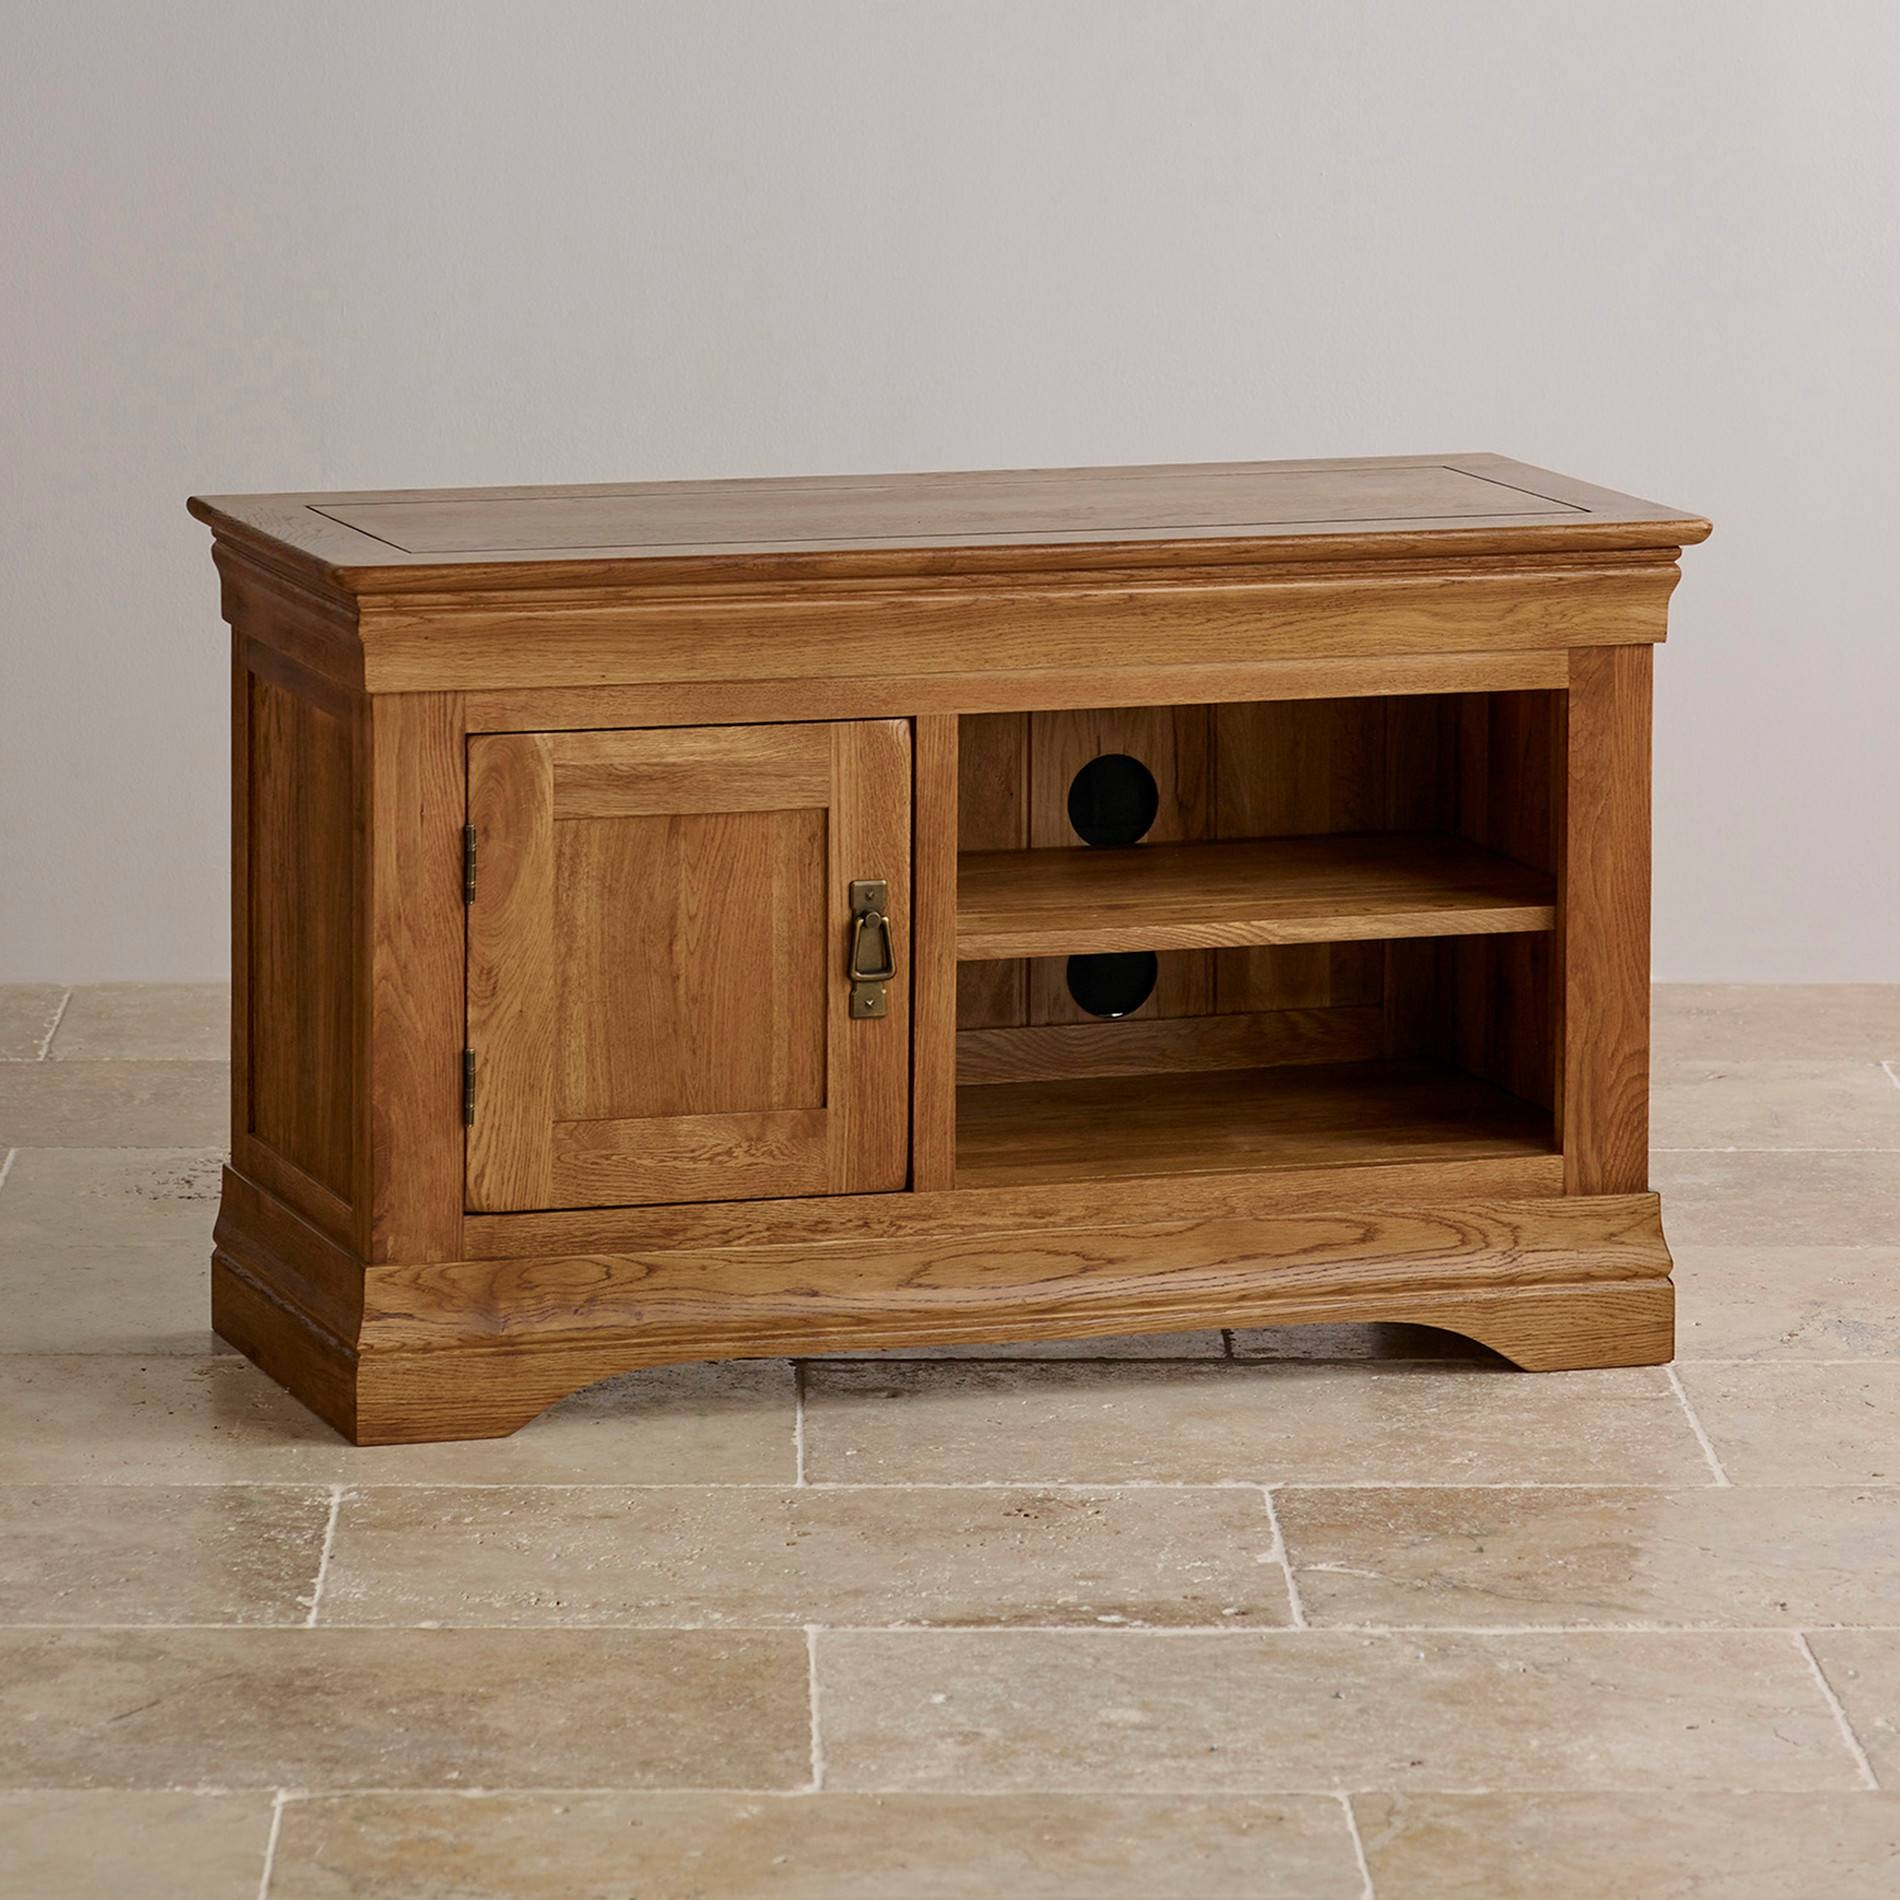 French Farmhouse Tv Cabinet | Solid Oak | Oak Furniture Land With Regard To Small Oak Tv Cabinets (View 4 of 15)